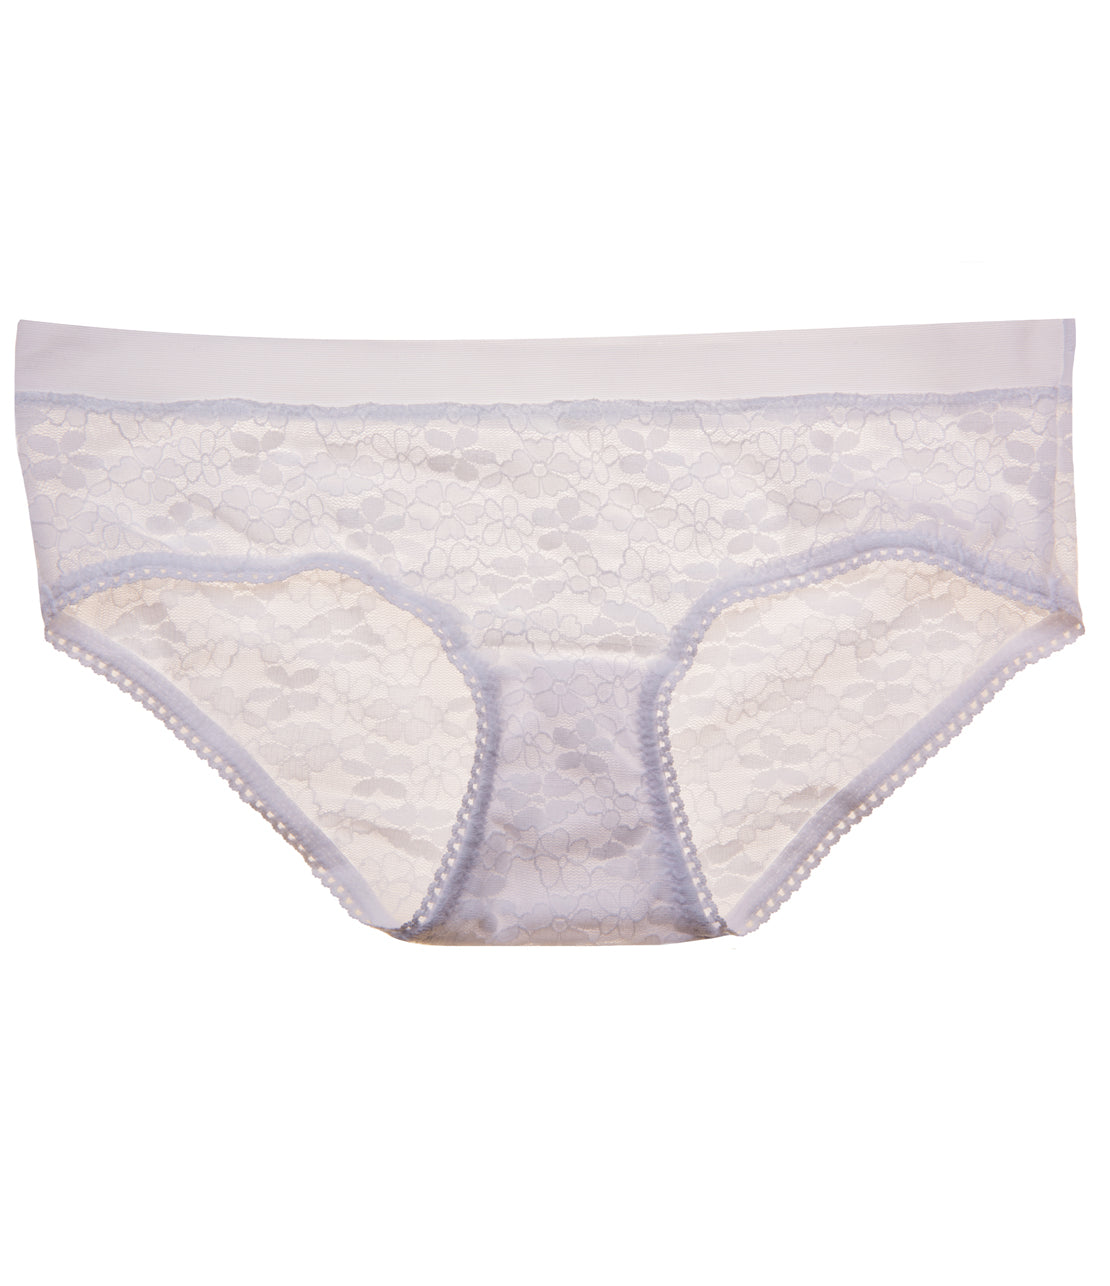 Luxury Lace Hipster 3-Pack